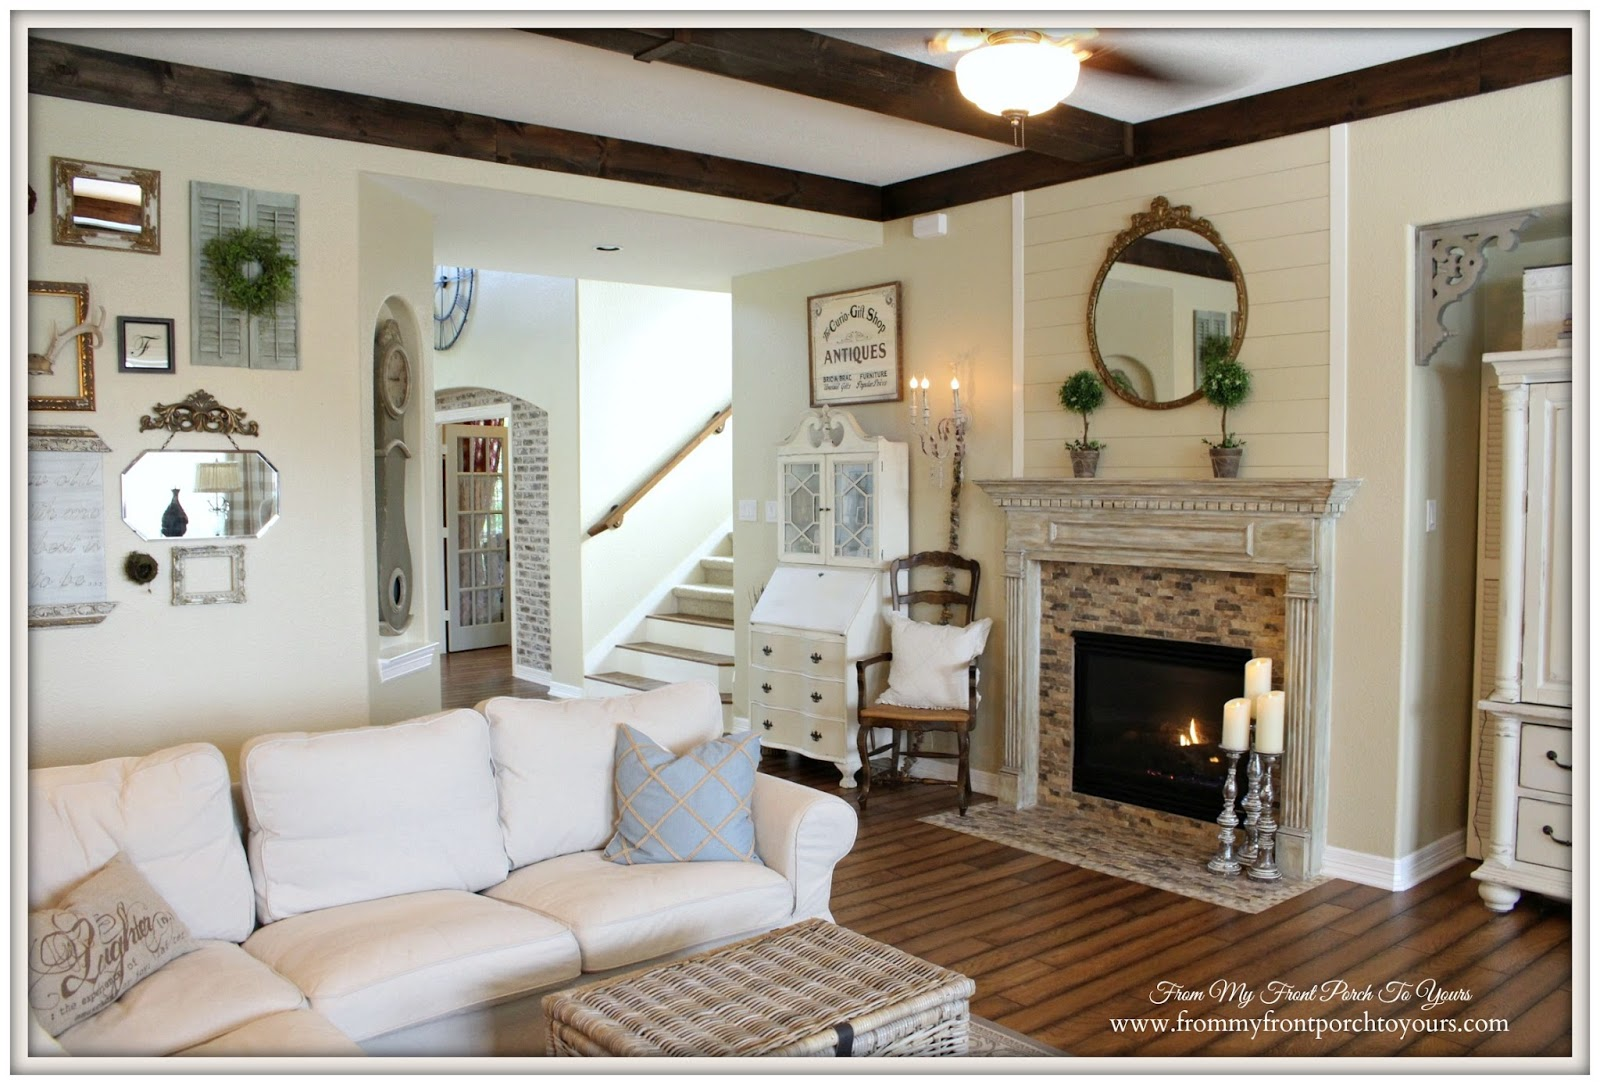 From My Front Porch To Yours: Farmhouse Living Room With